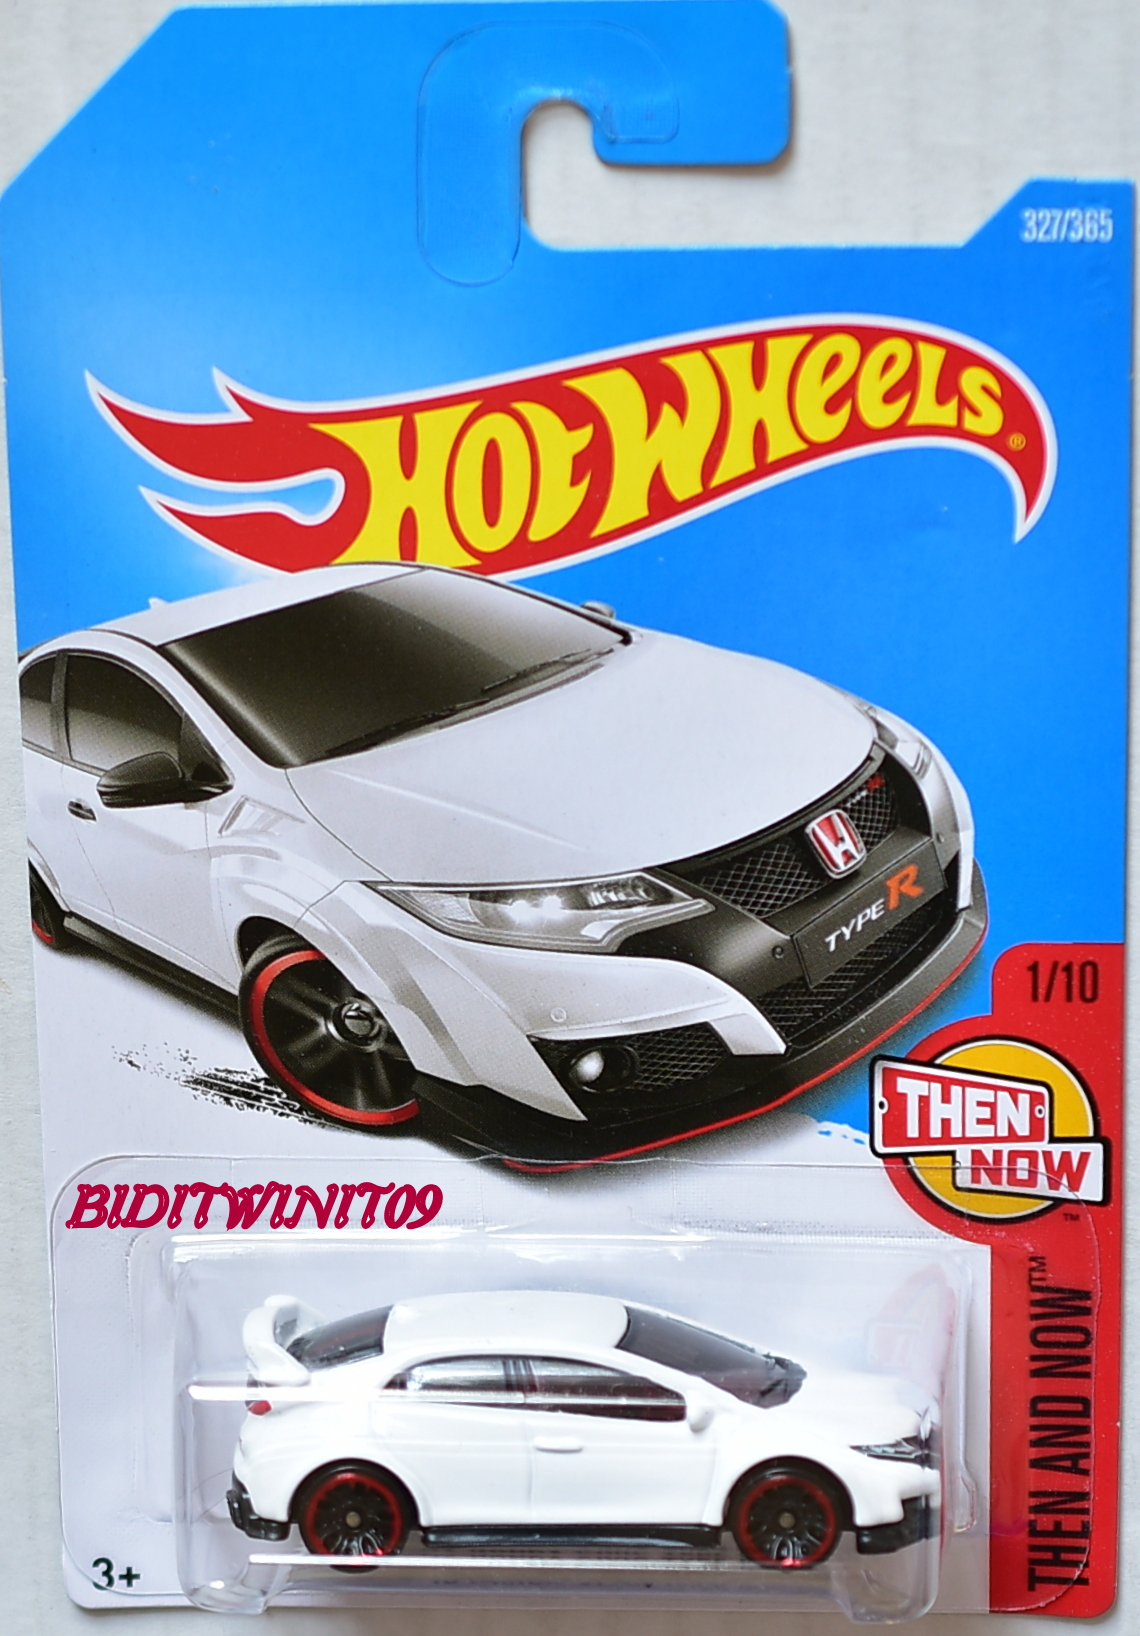 HOT WHEELS 2017 THEN AND NOW '16 HONDA CIVIC TYPE R #1/10 WHITE